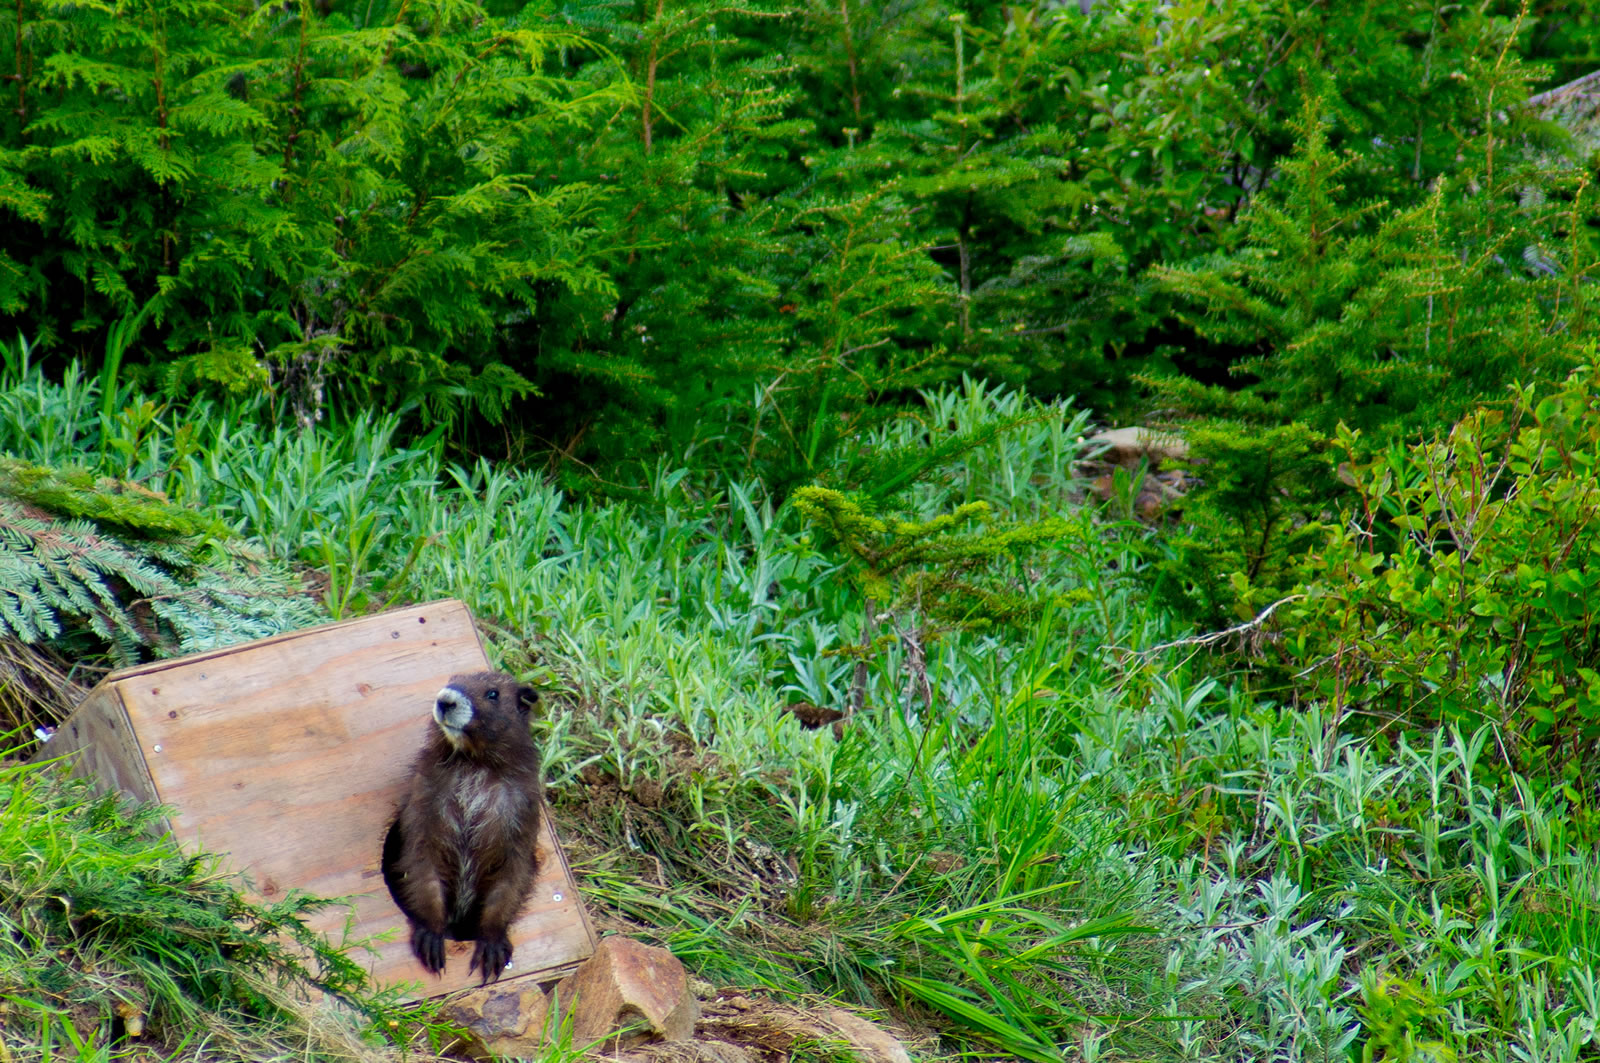 marmots, mt washington 031-Editsm